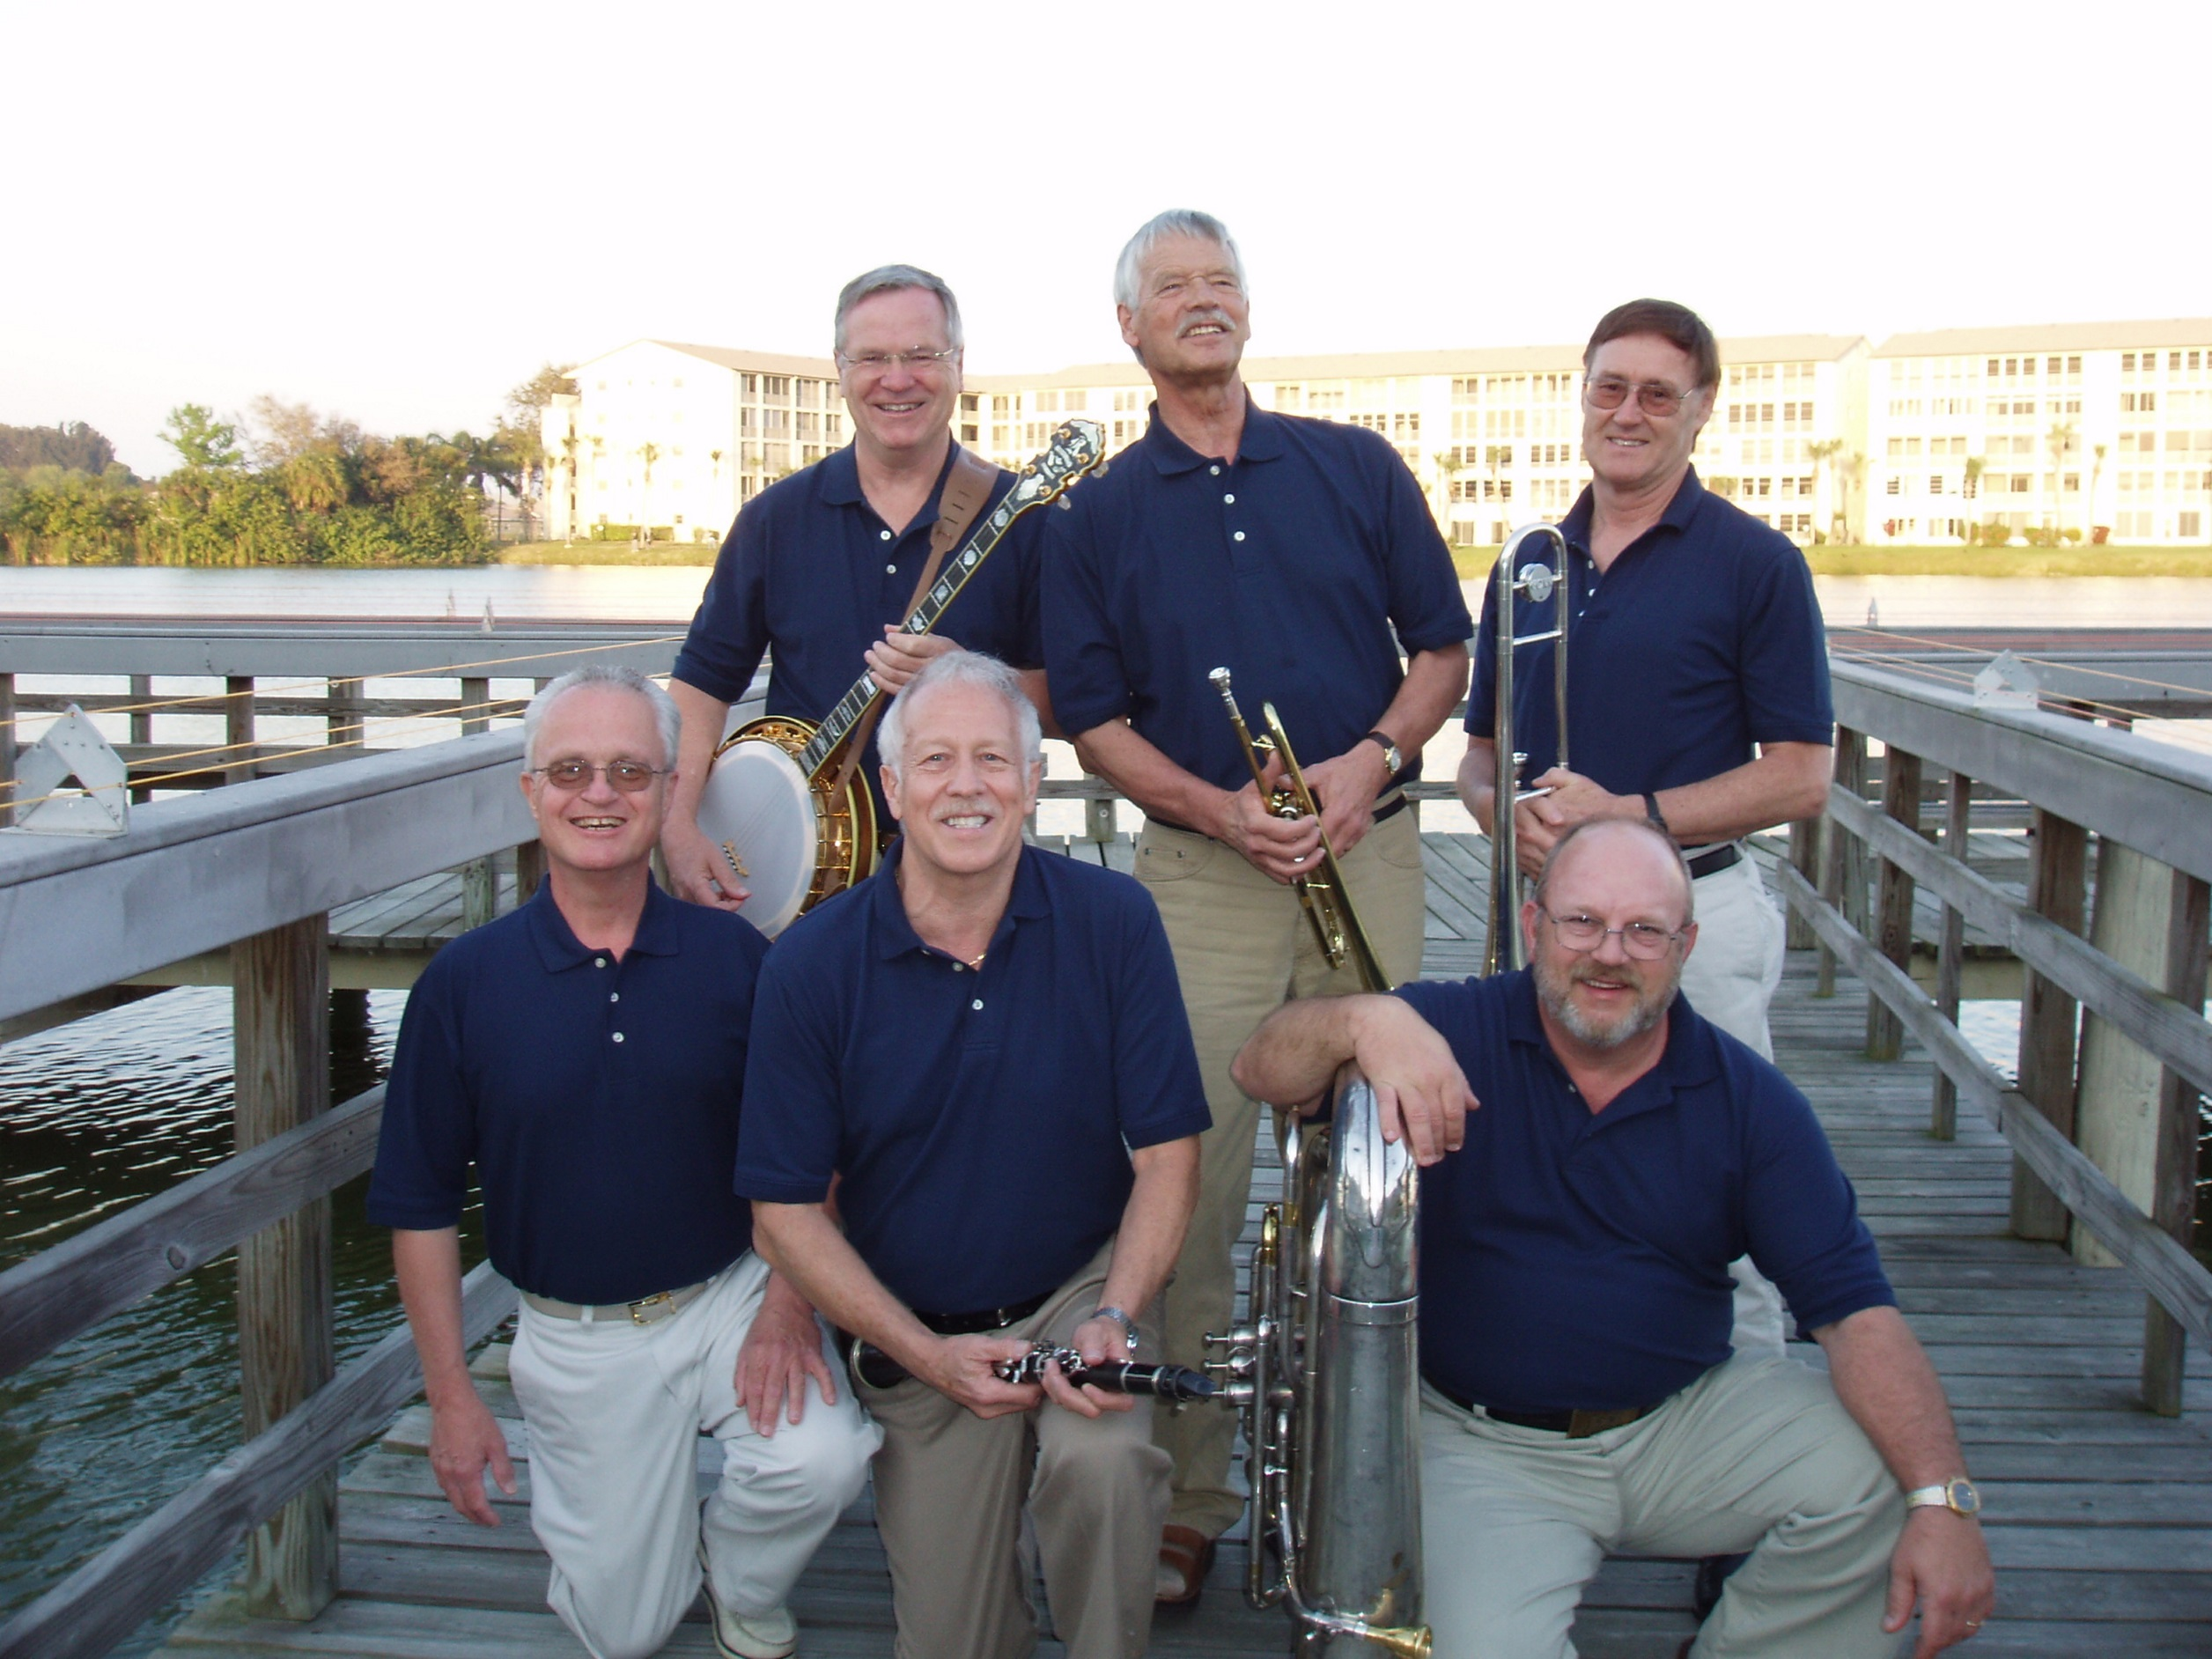 The Canamger Jazz Band at Venice, Florida